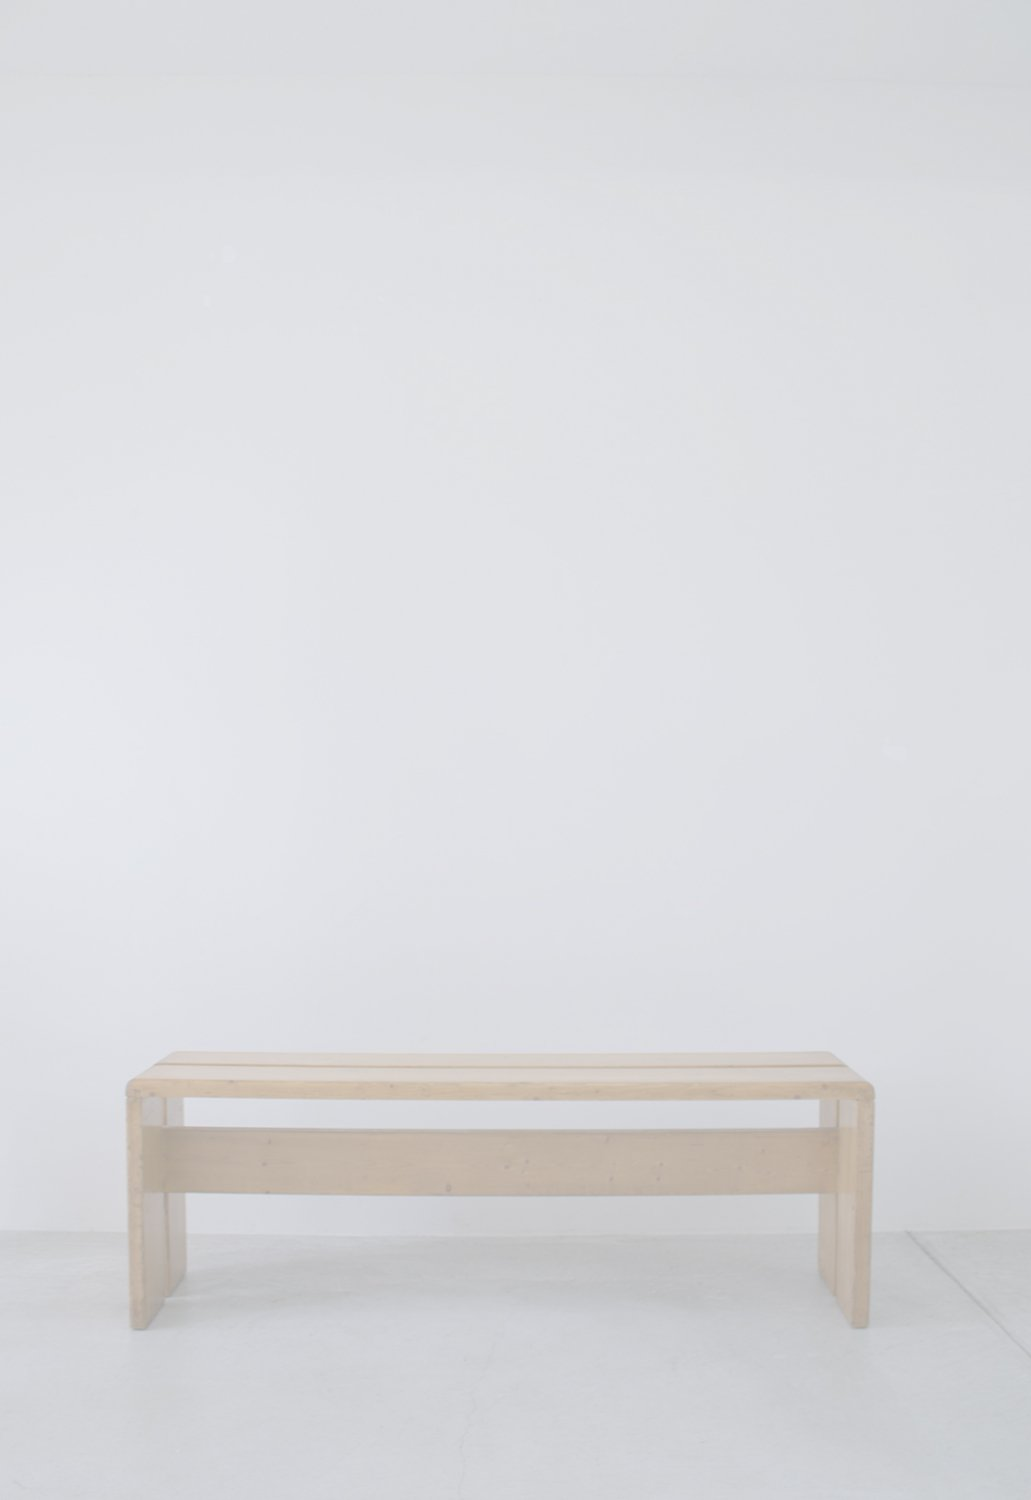 Charlotte Perriand Pine Stool for Les Arcs